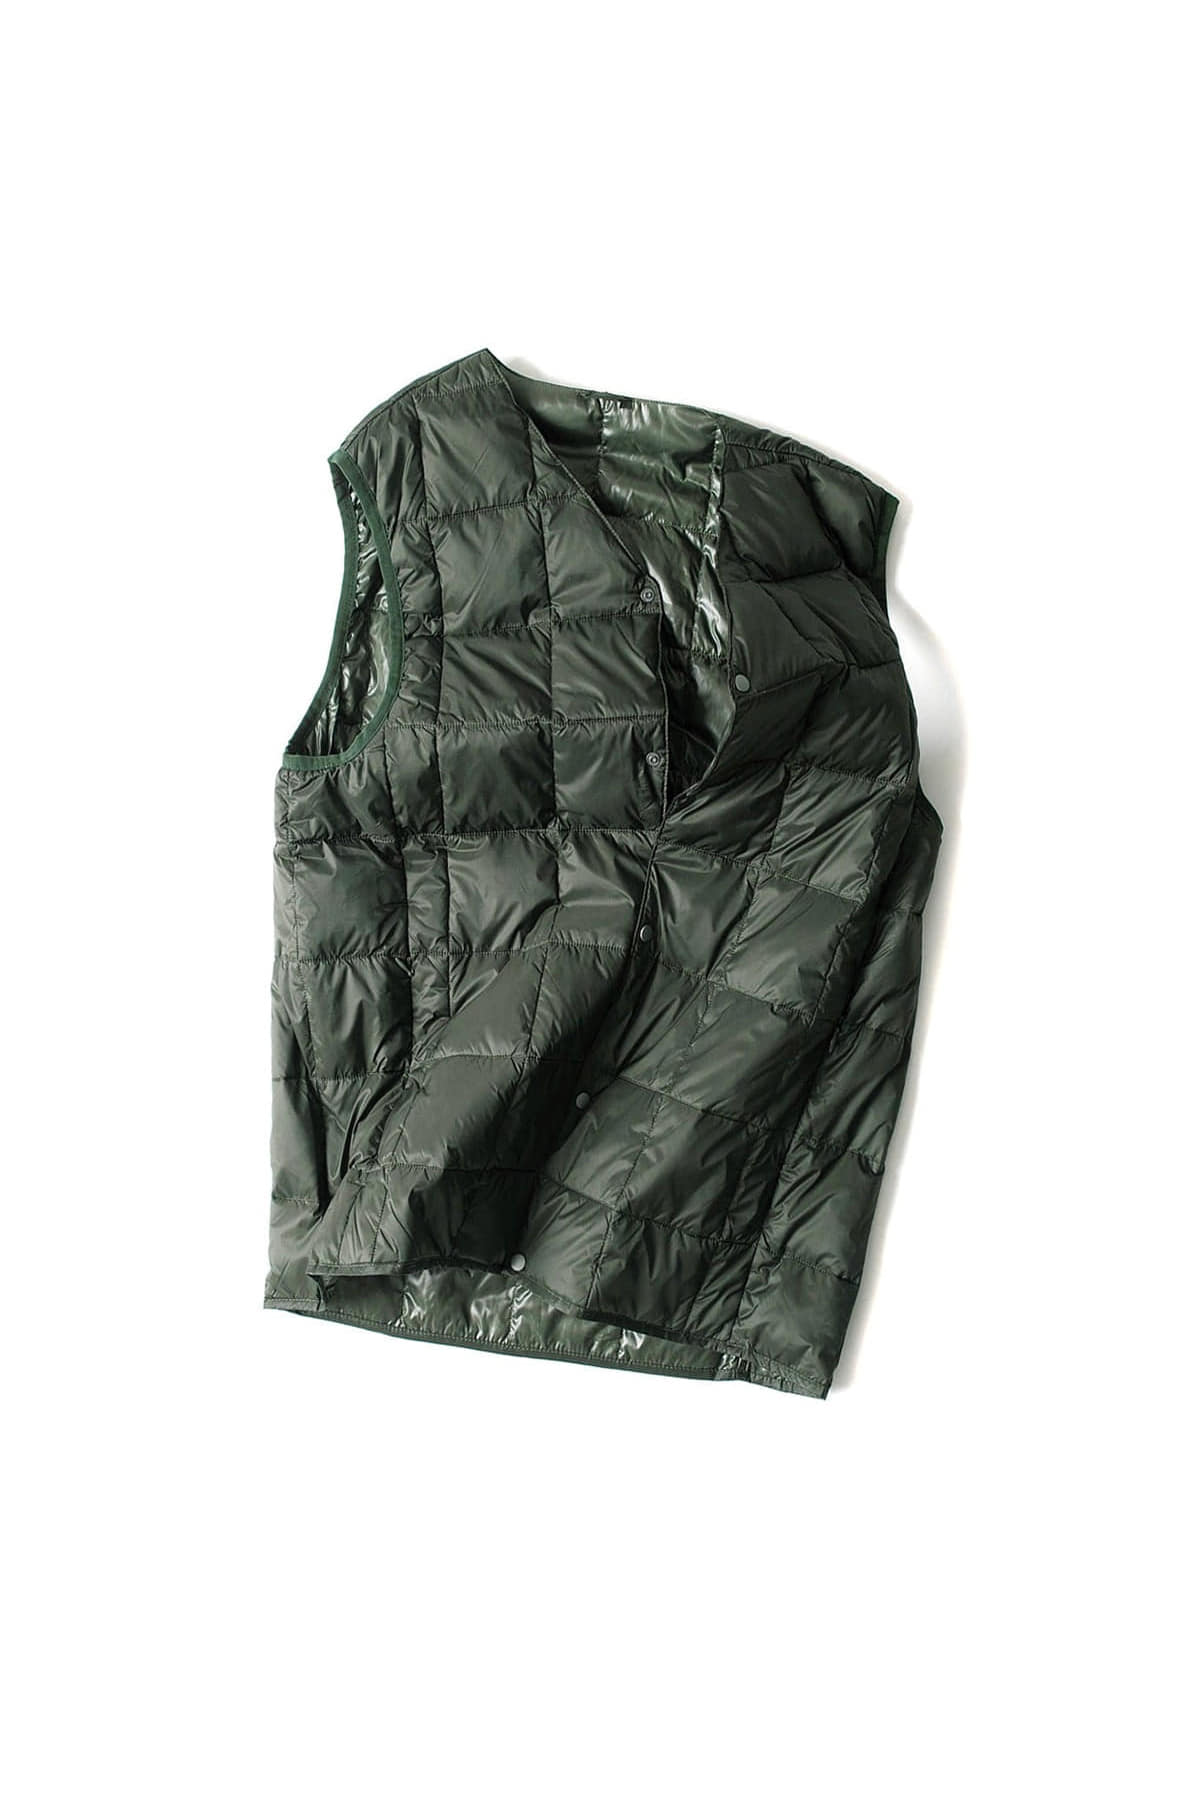 TAION :  V Neck Button Down Vest (Green)